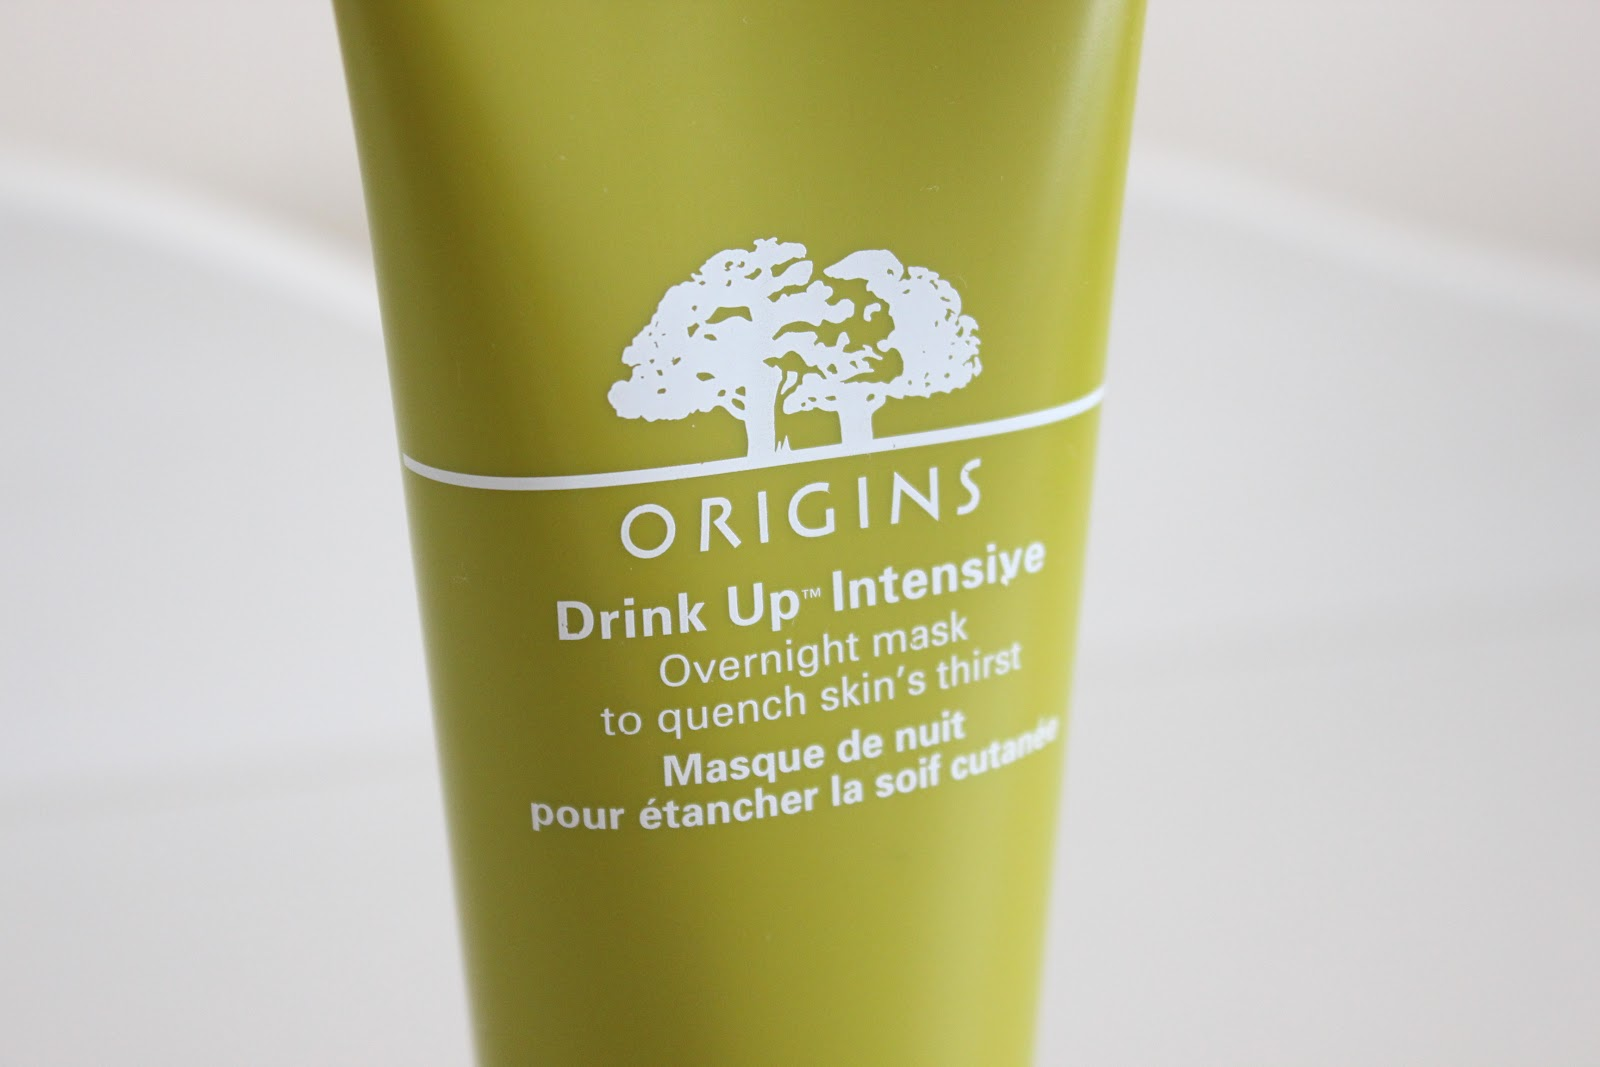 origins drink up intensive overnight mask instructions